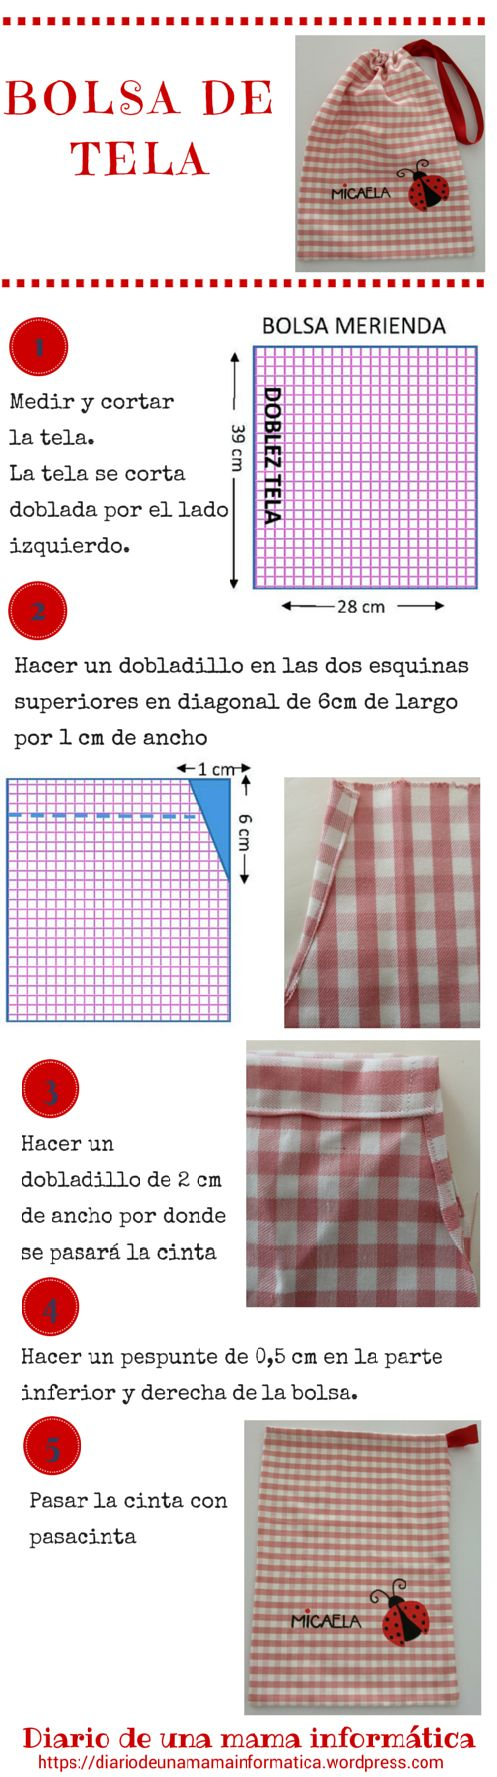 220 best costura images on Pinterest | Sewing projects, Bag ...